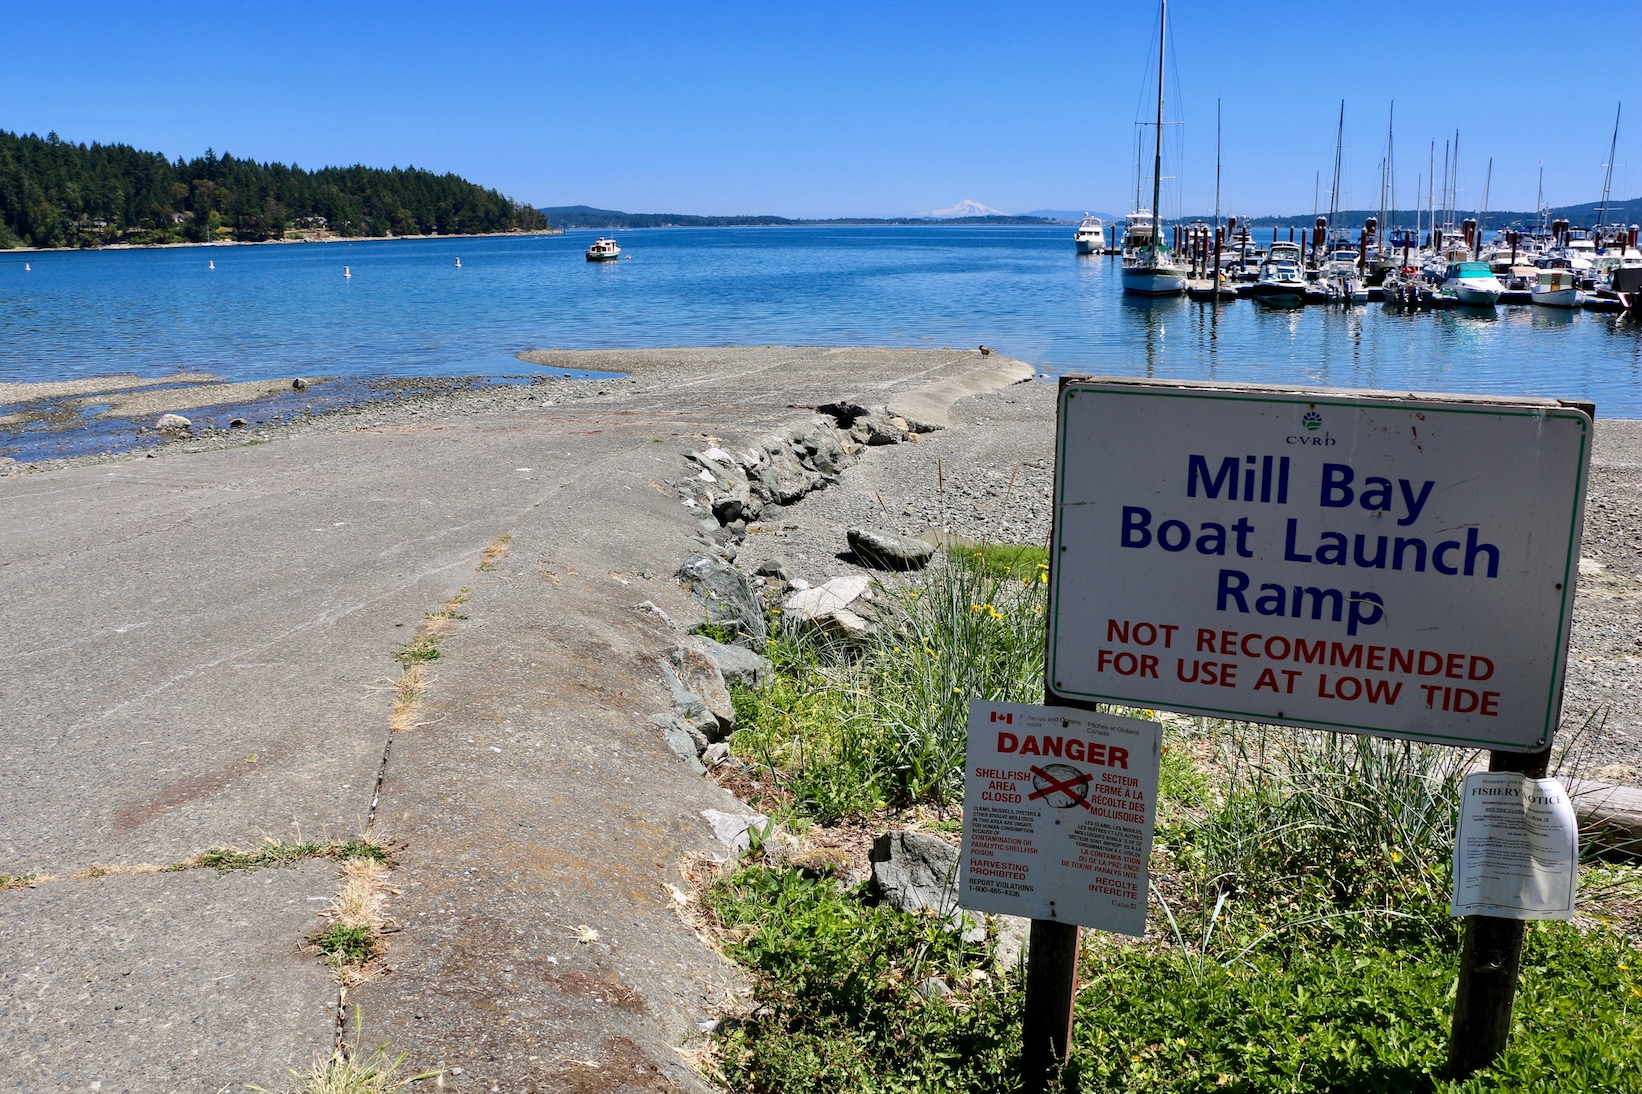 Mill Bay Boat Ramp